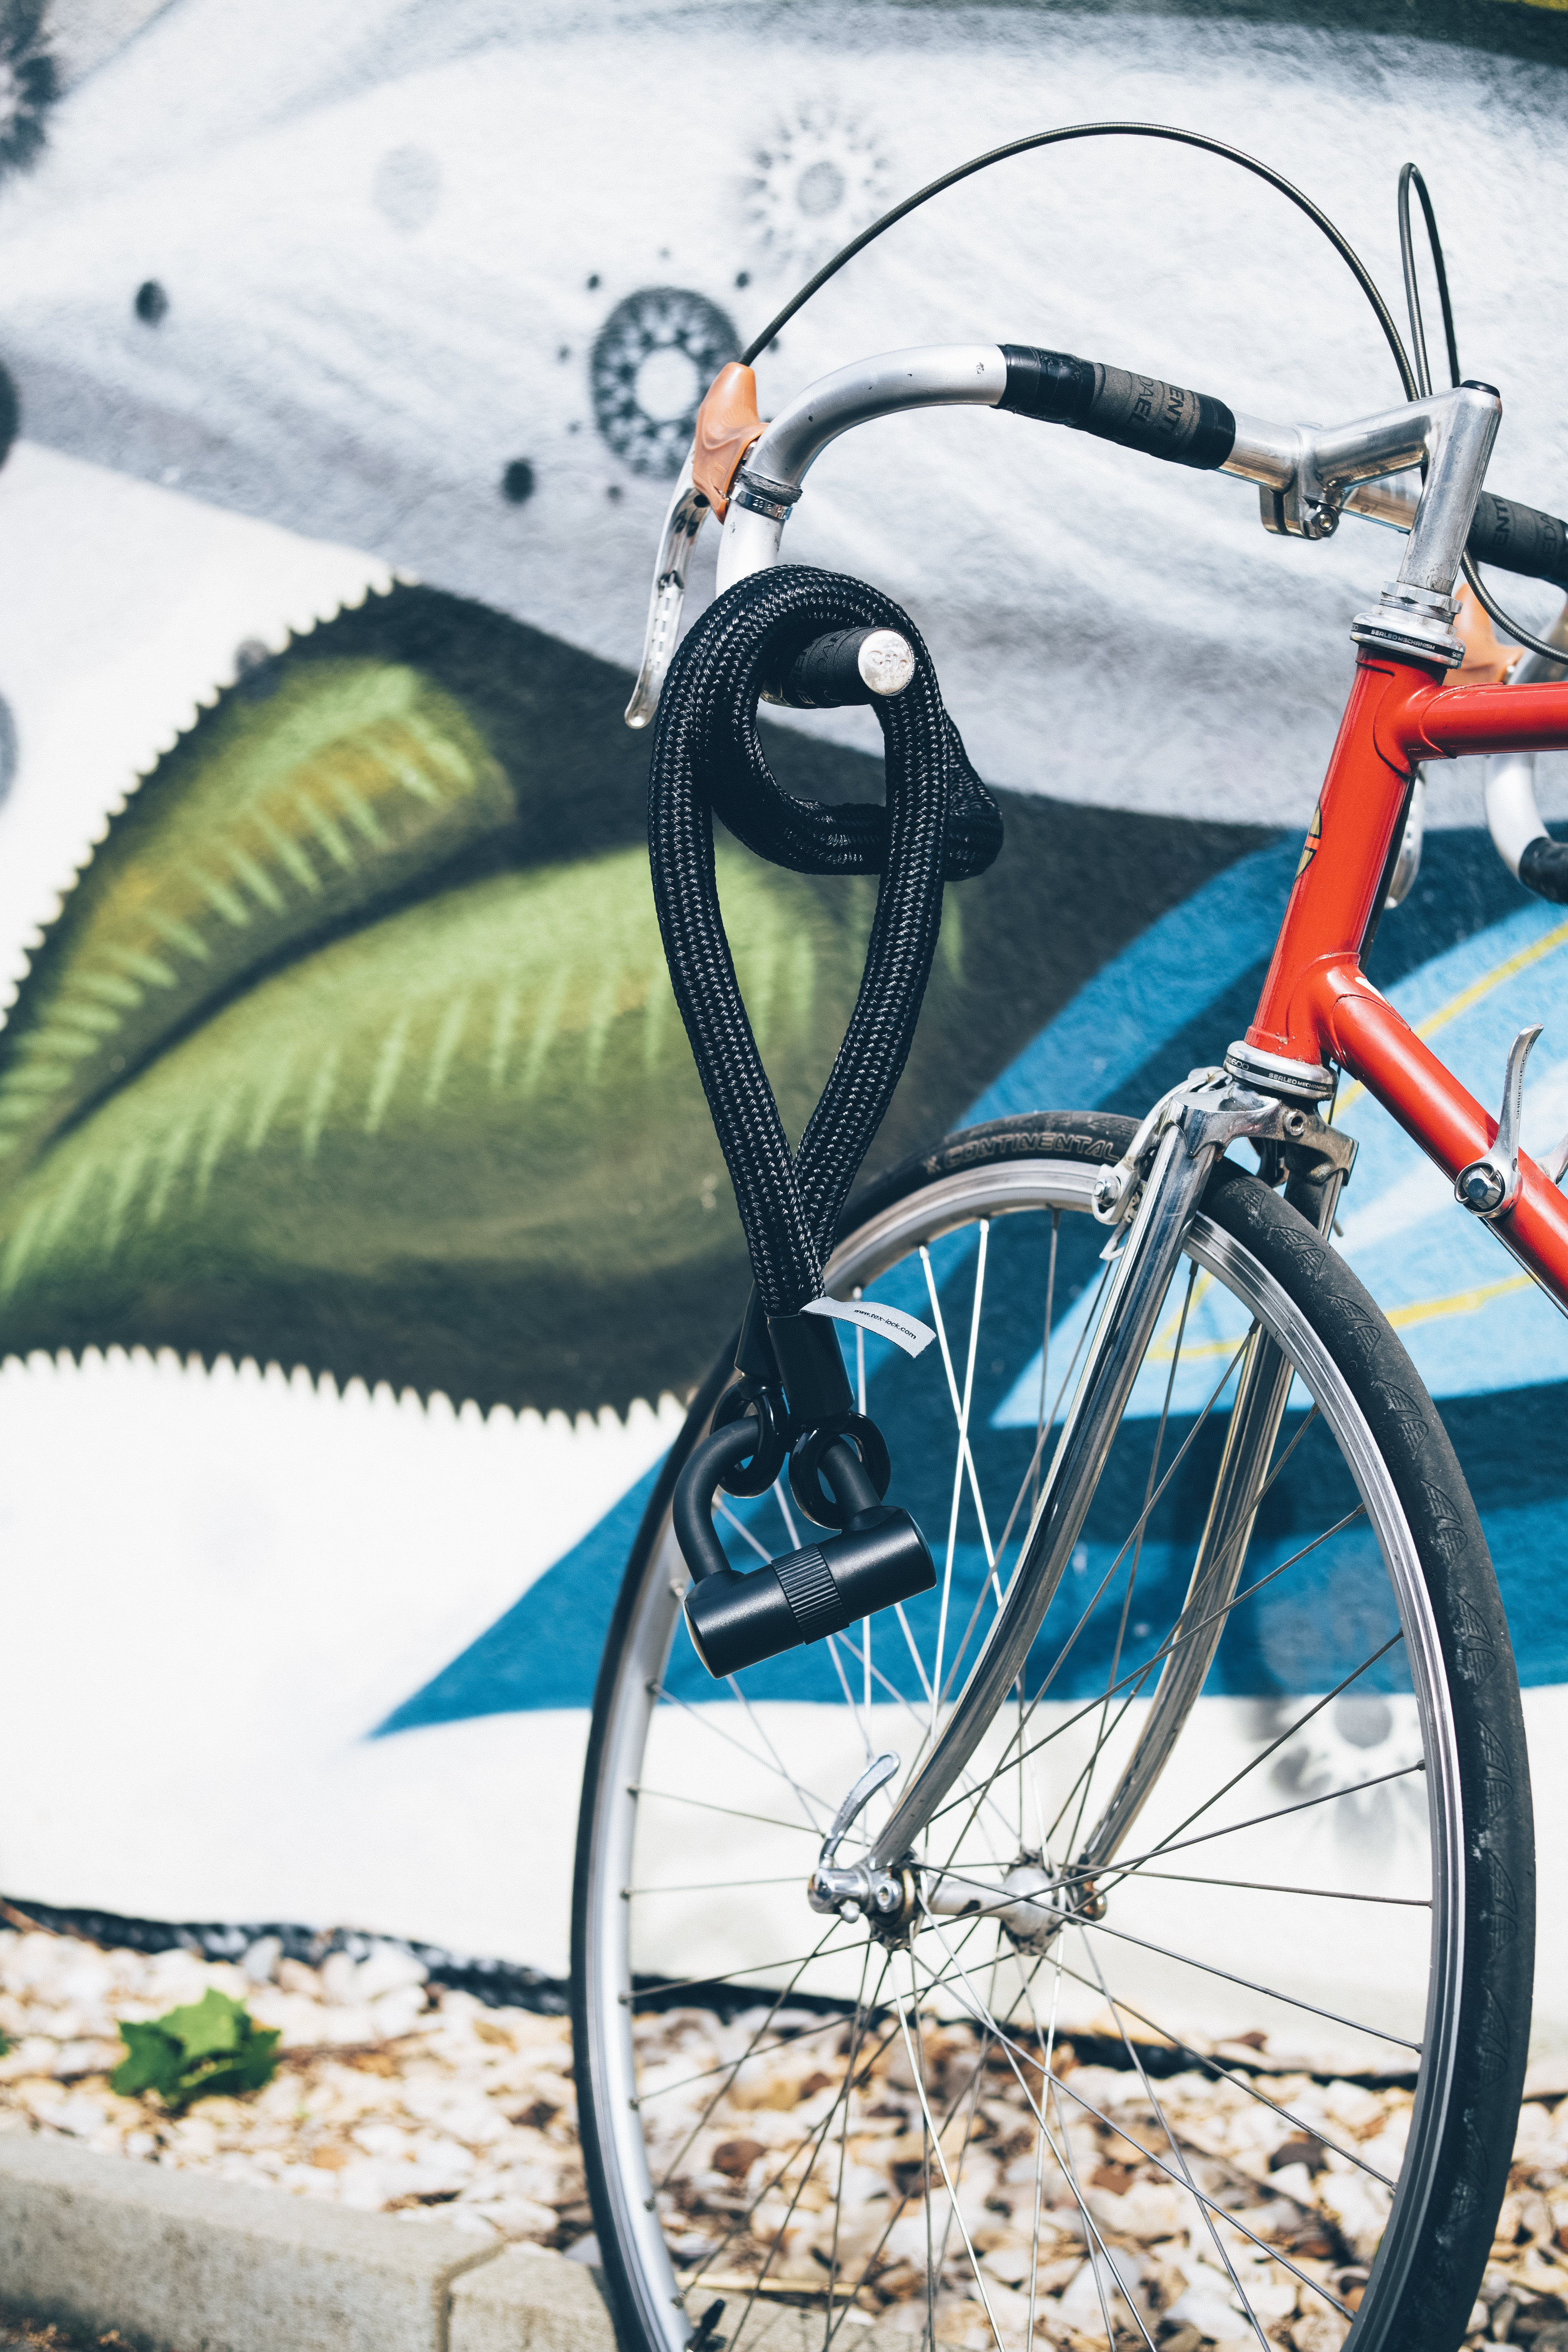 Black Cable Lock Hanged on Gray and Red Bike